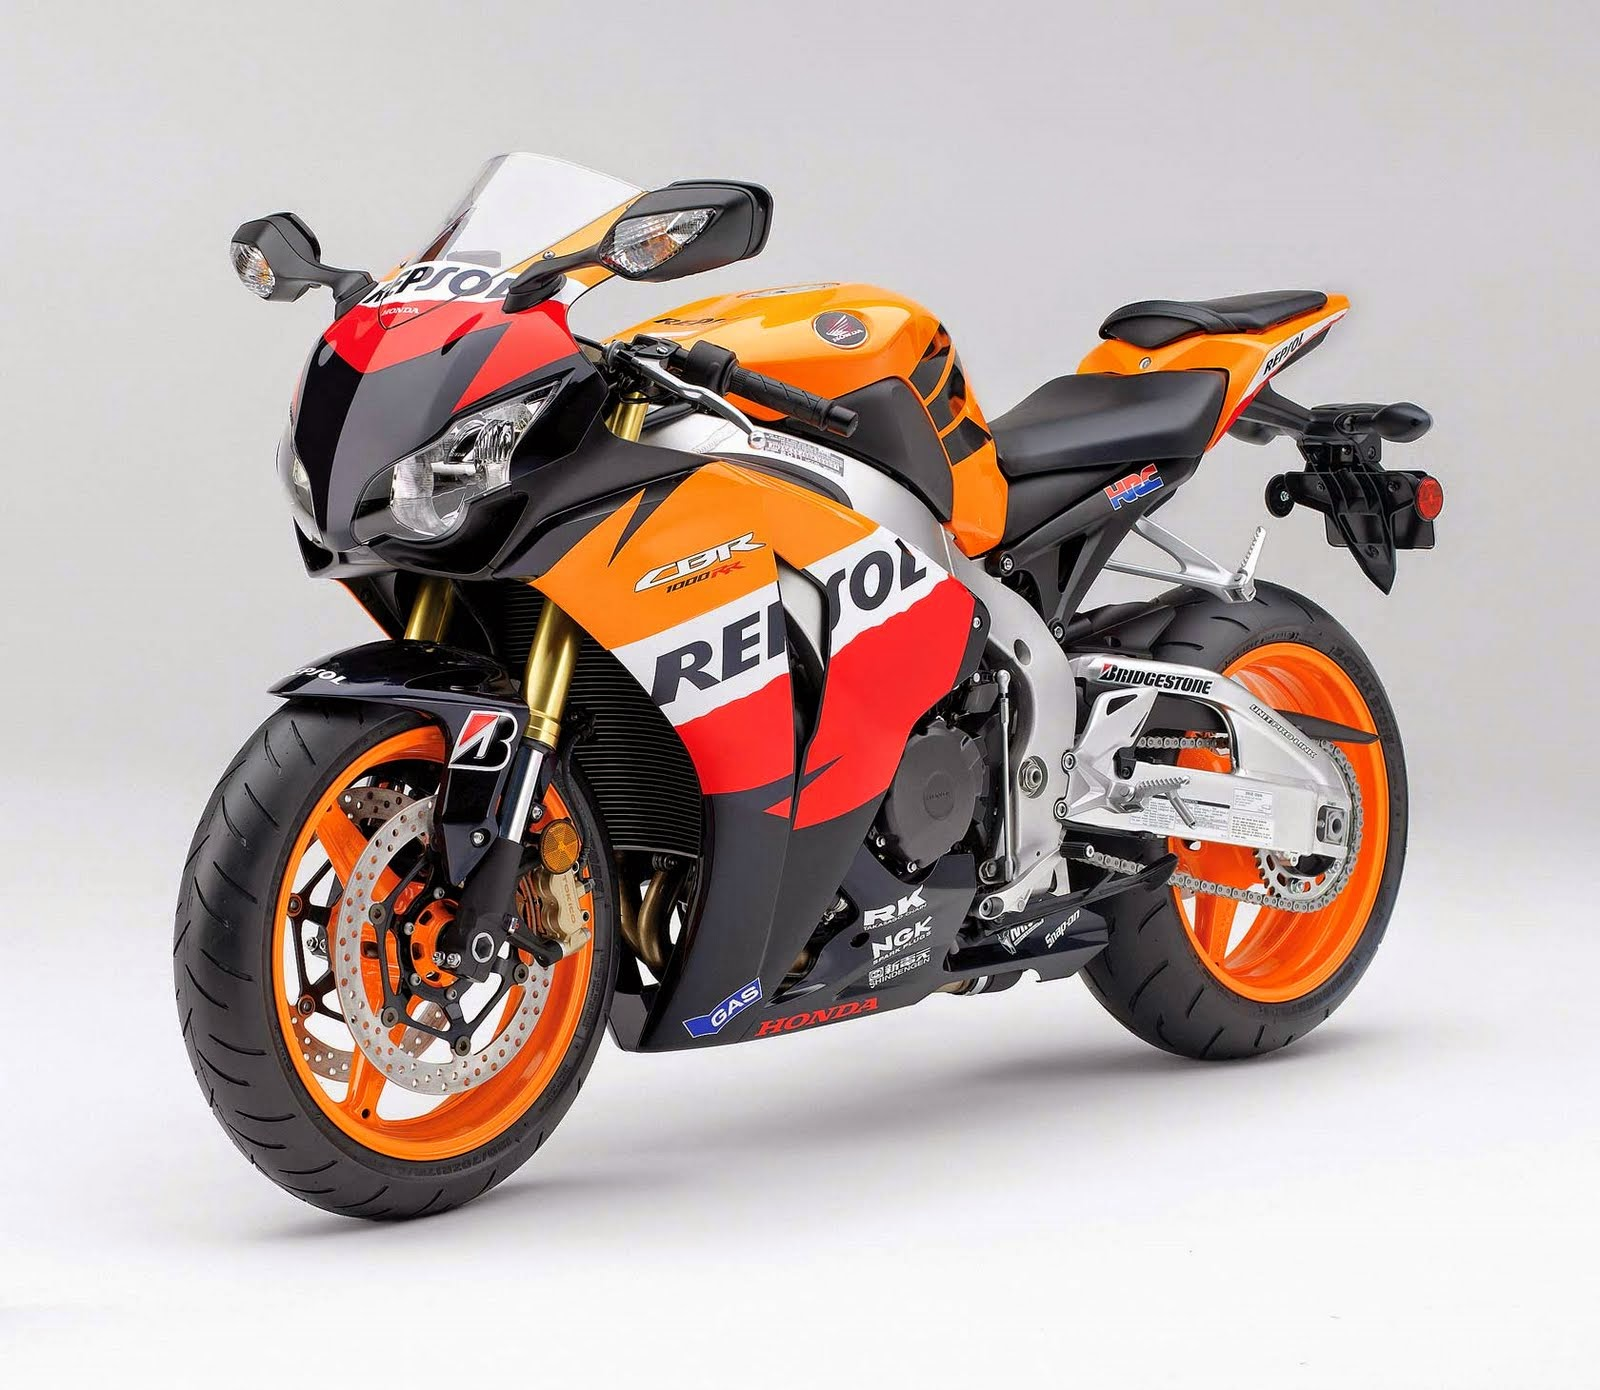 Cbr 150r Repsol Edition Modifikasi